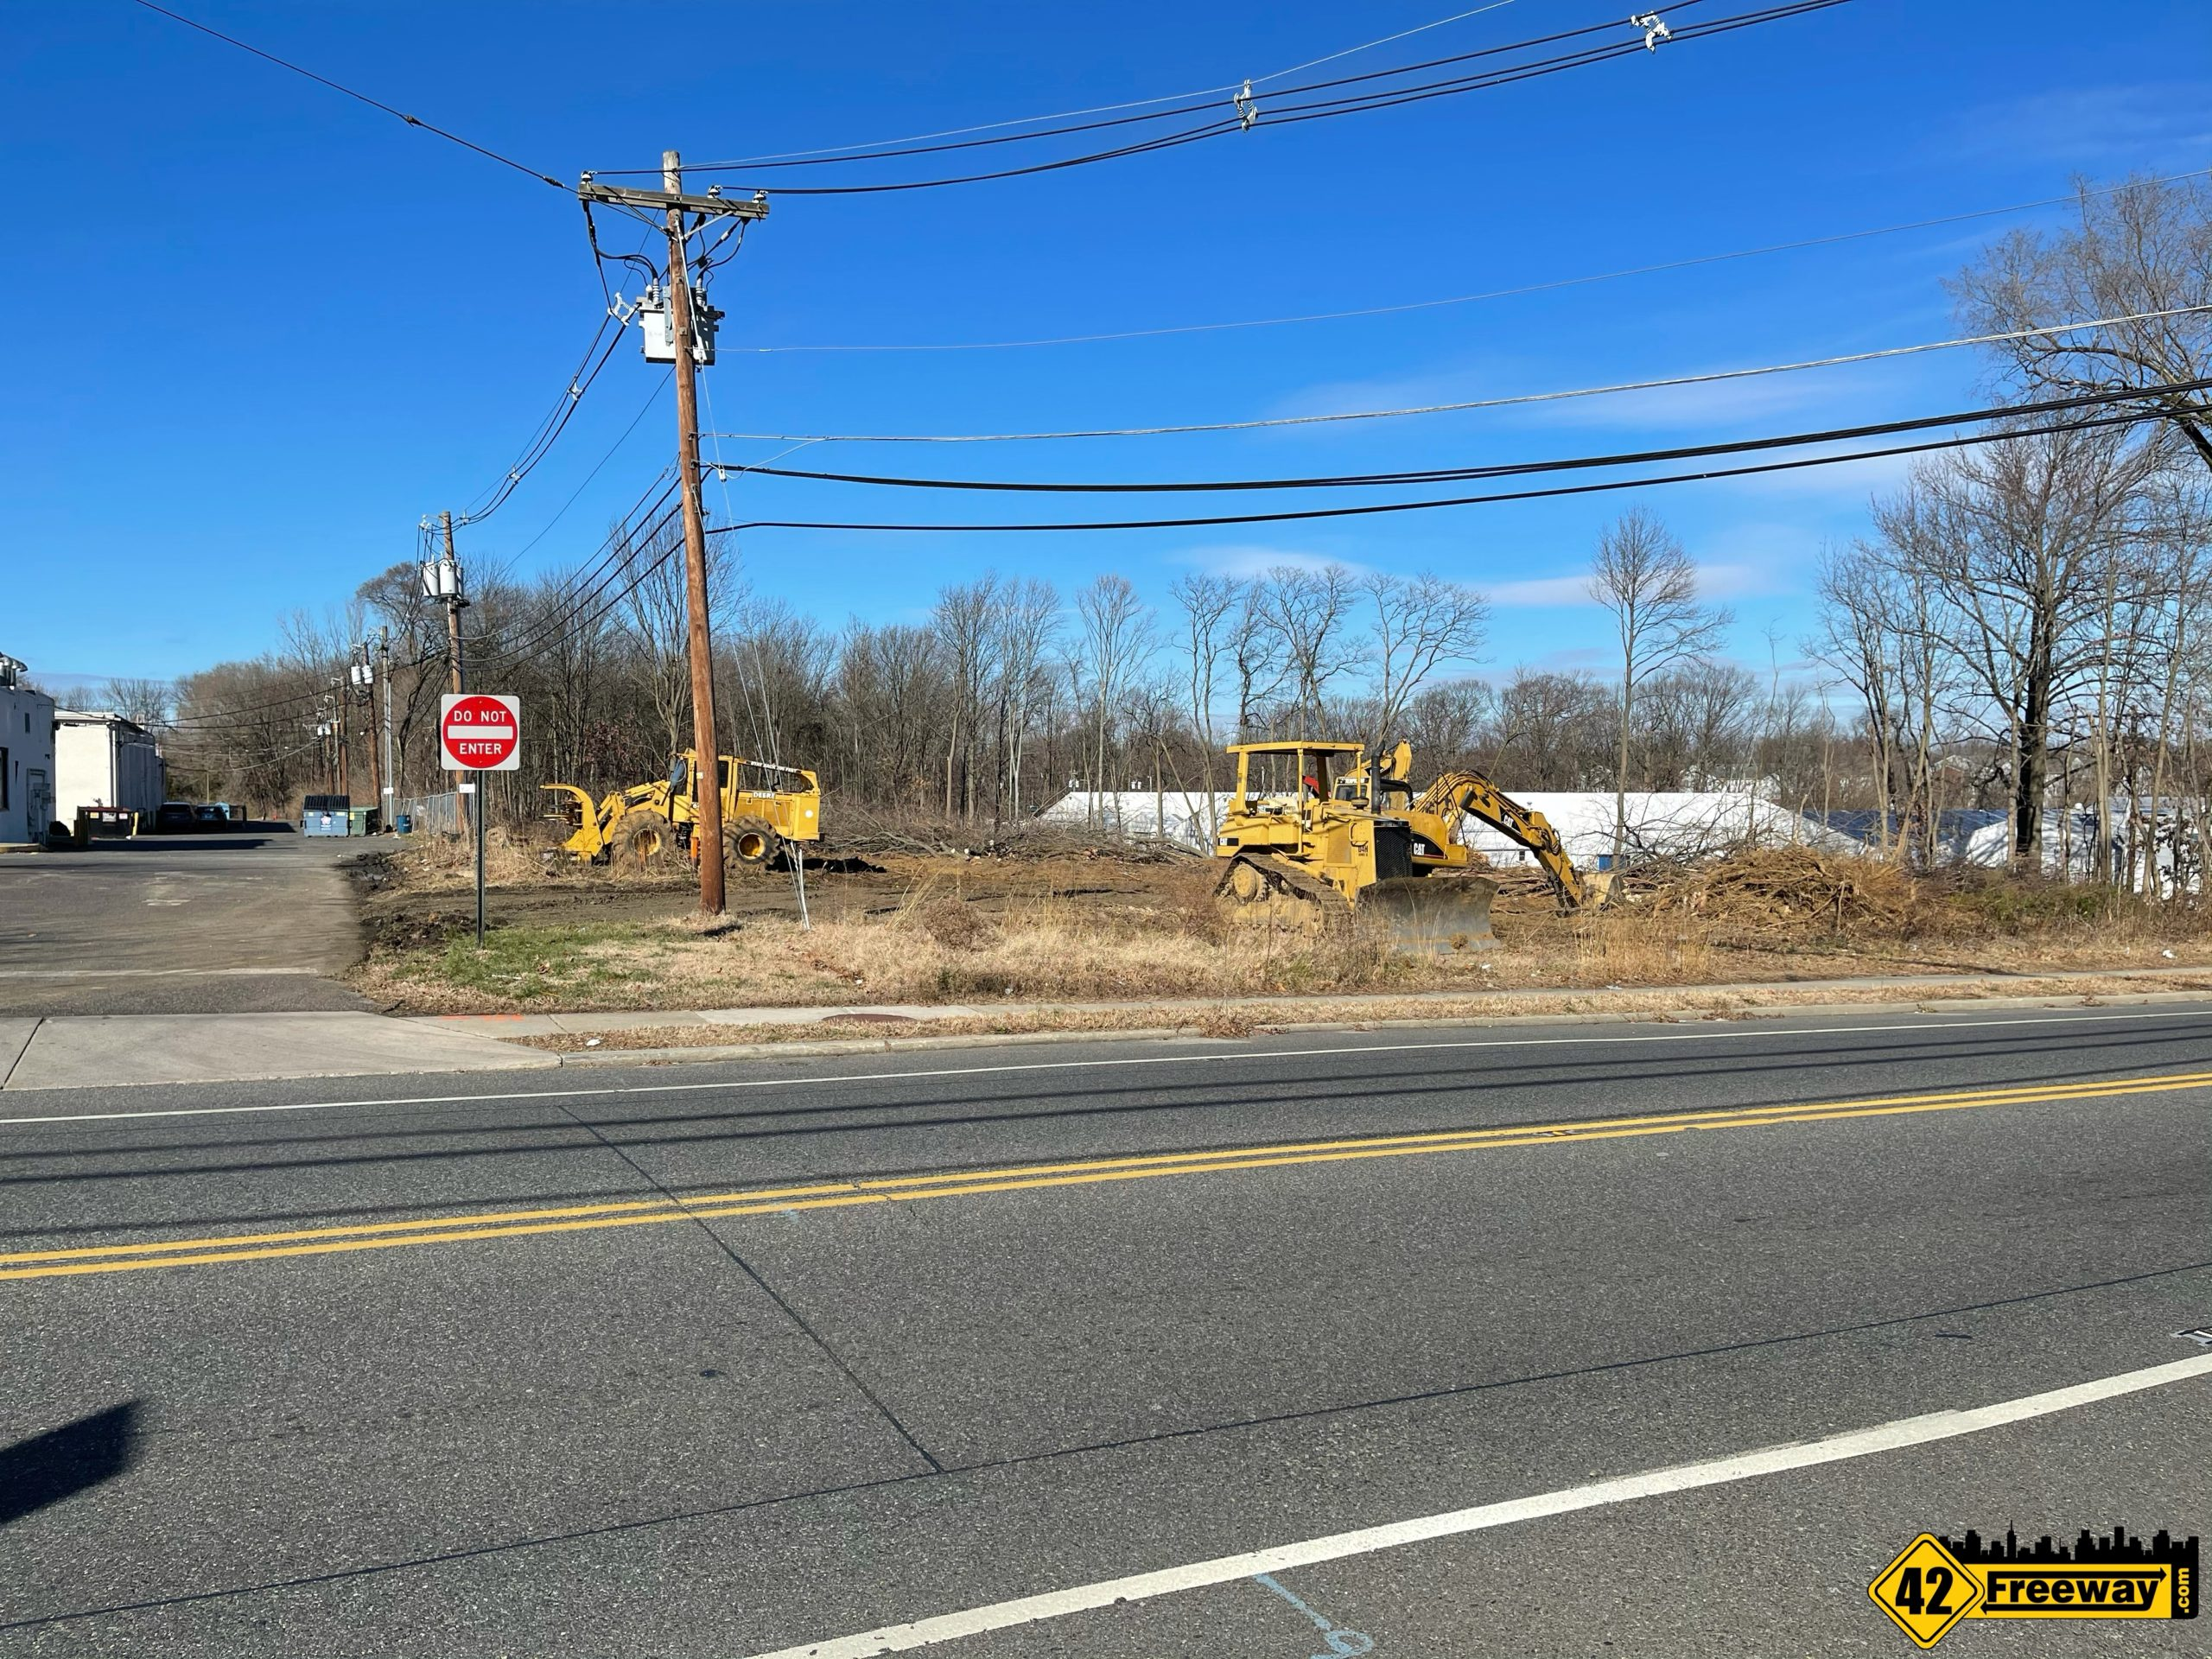 Dollar General Runnemede Lot Clearing Begins Ahead of Construction